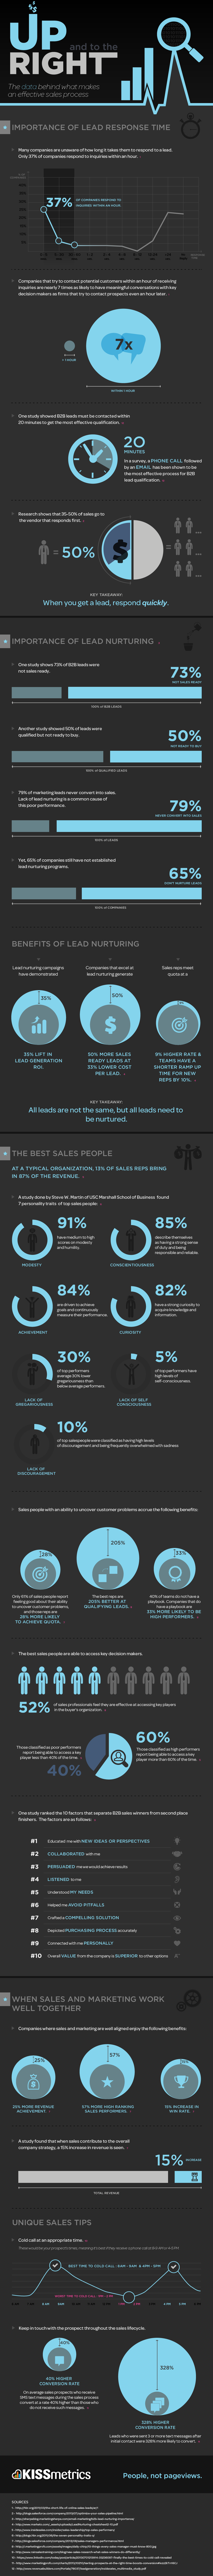 Infographic Data Behind Effective Sales Process